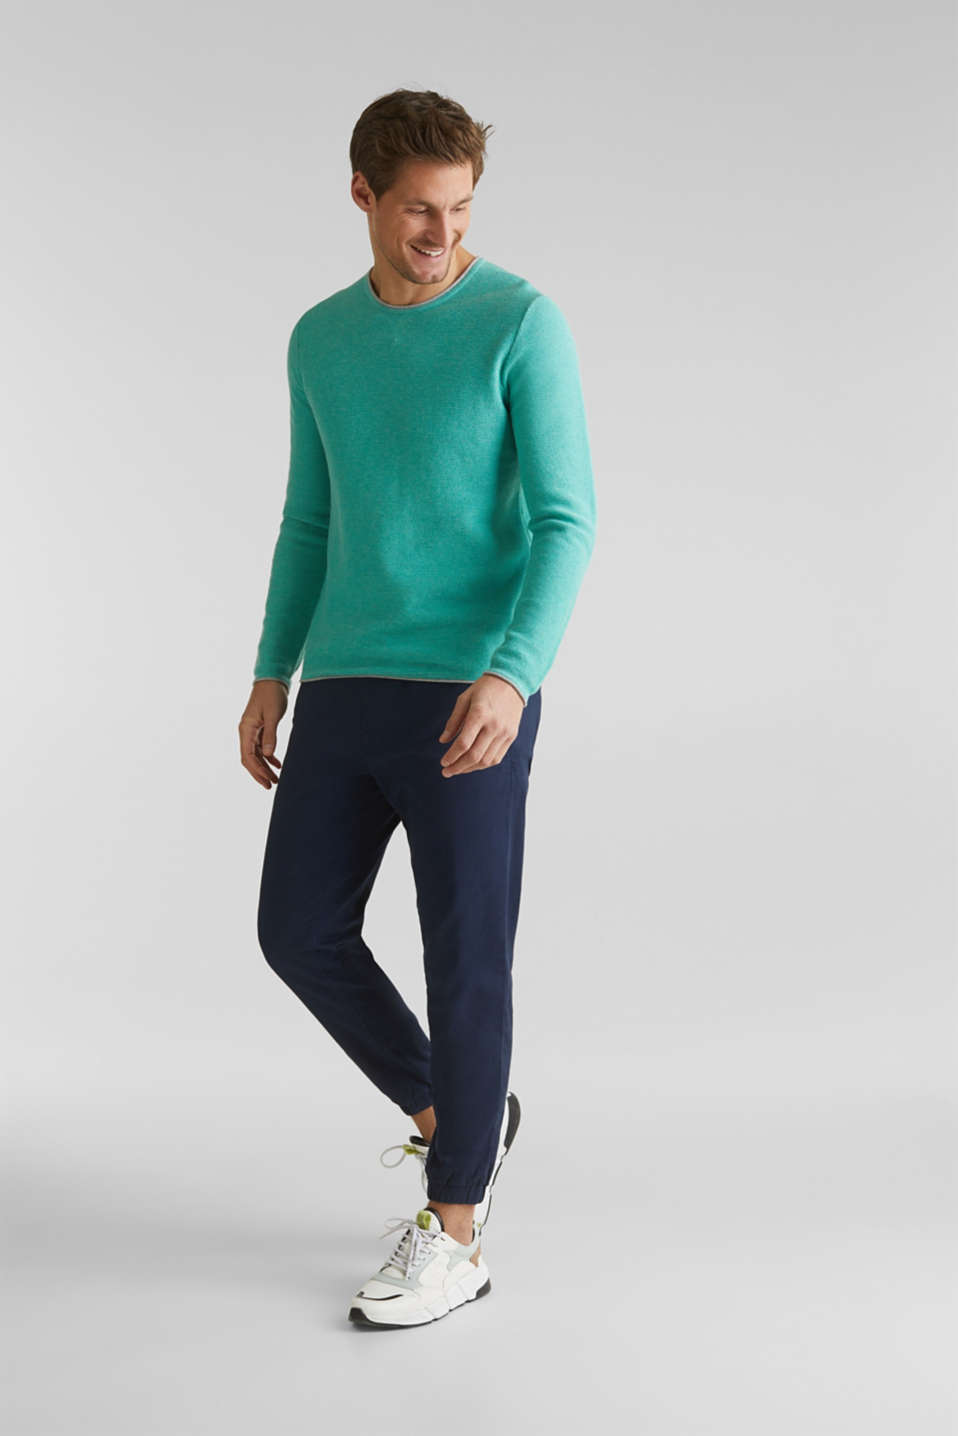 Textured jumper made of 100% cotton, LIGHT AQUA GREEN 5, detail image number 7